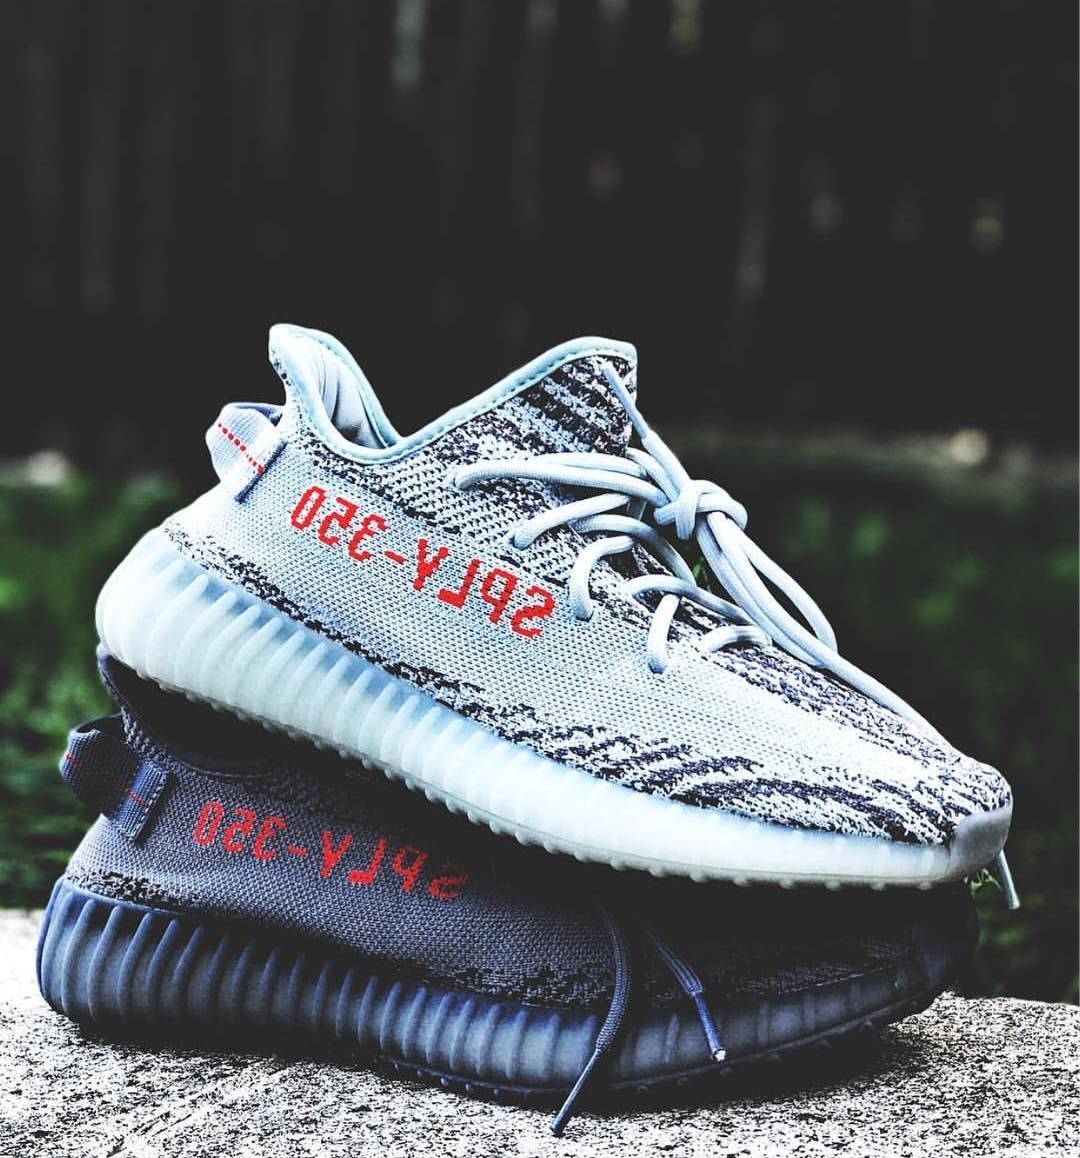 on sale 478fa 773a5 All Raffle Links For The Blue Tint Yeezy Boost 350 V2 ...